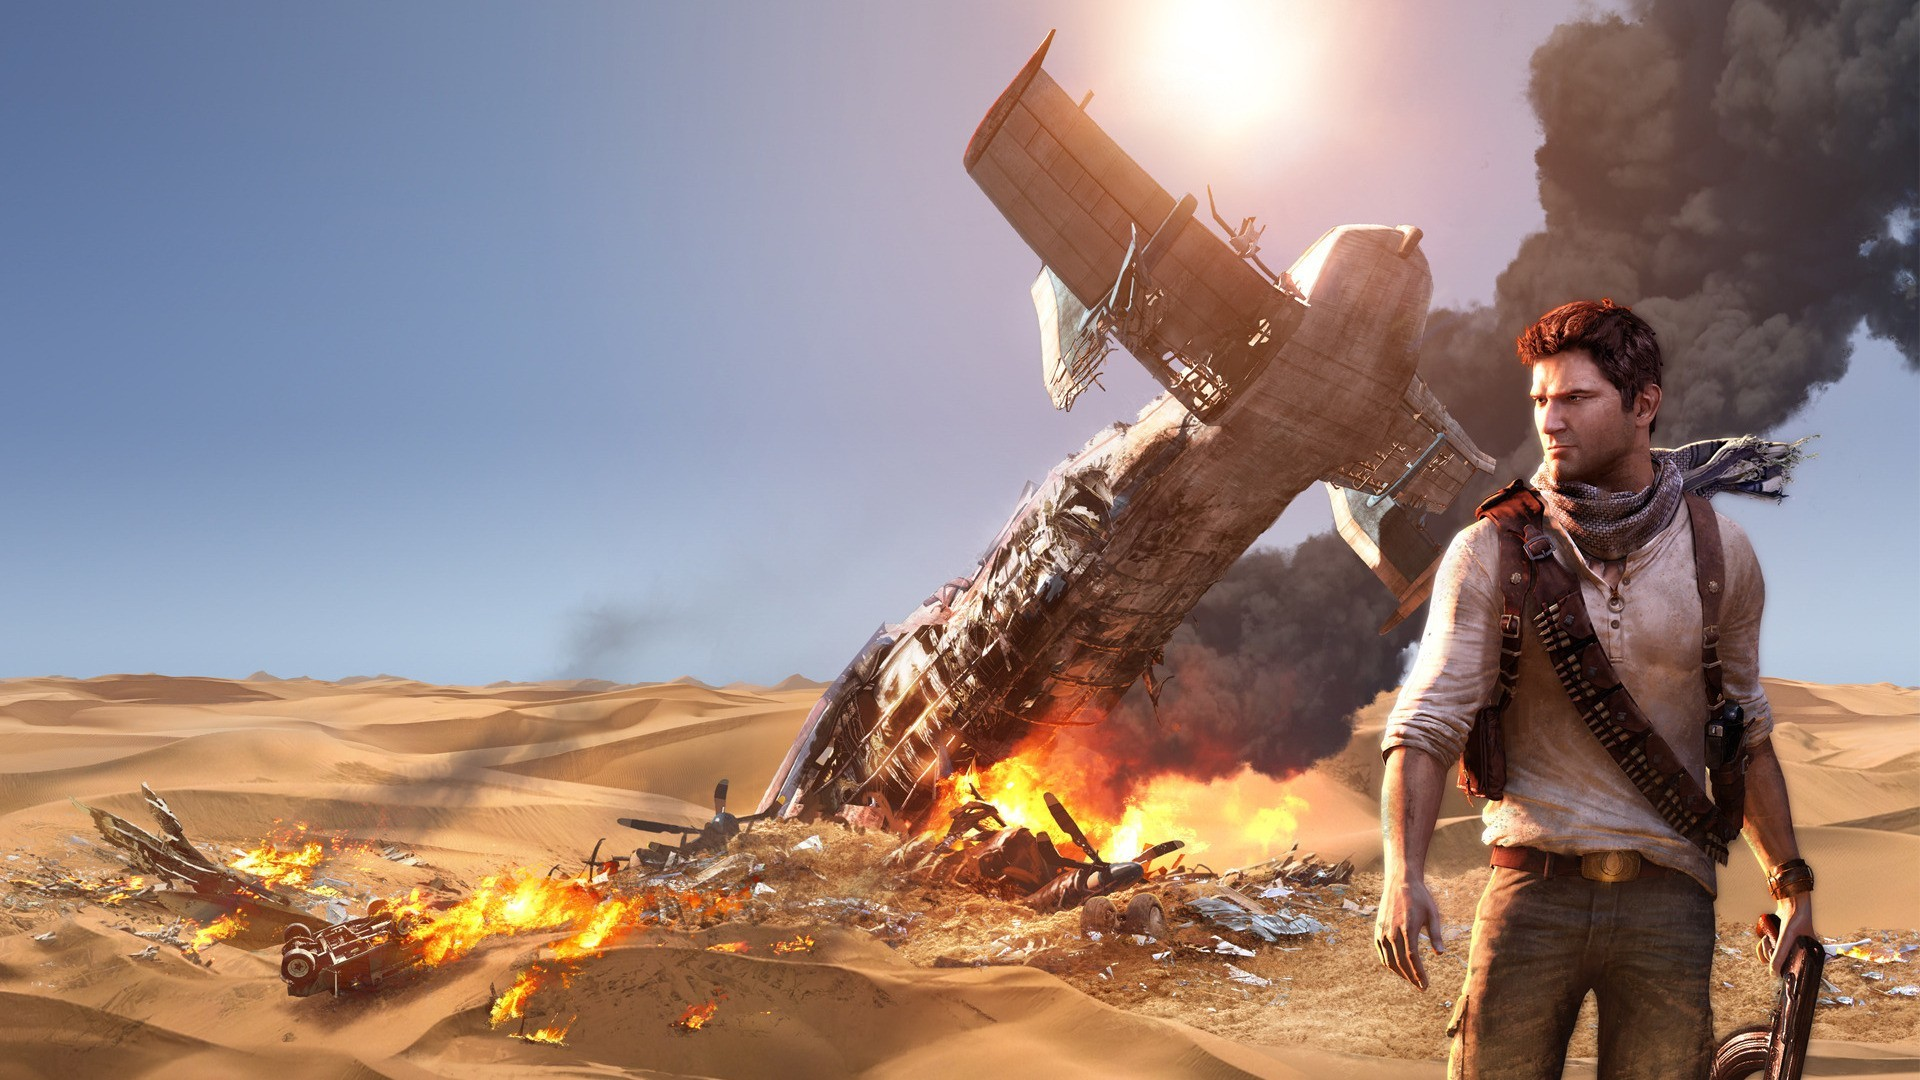 Aircraft deserts uncharted nathan HD Wallpaper